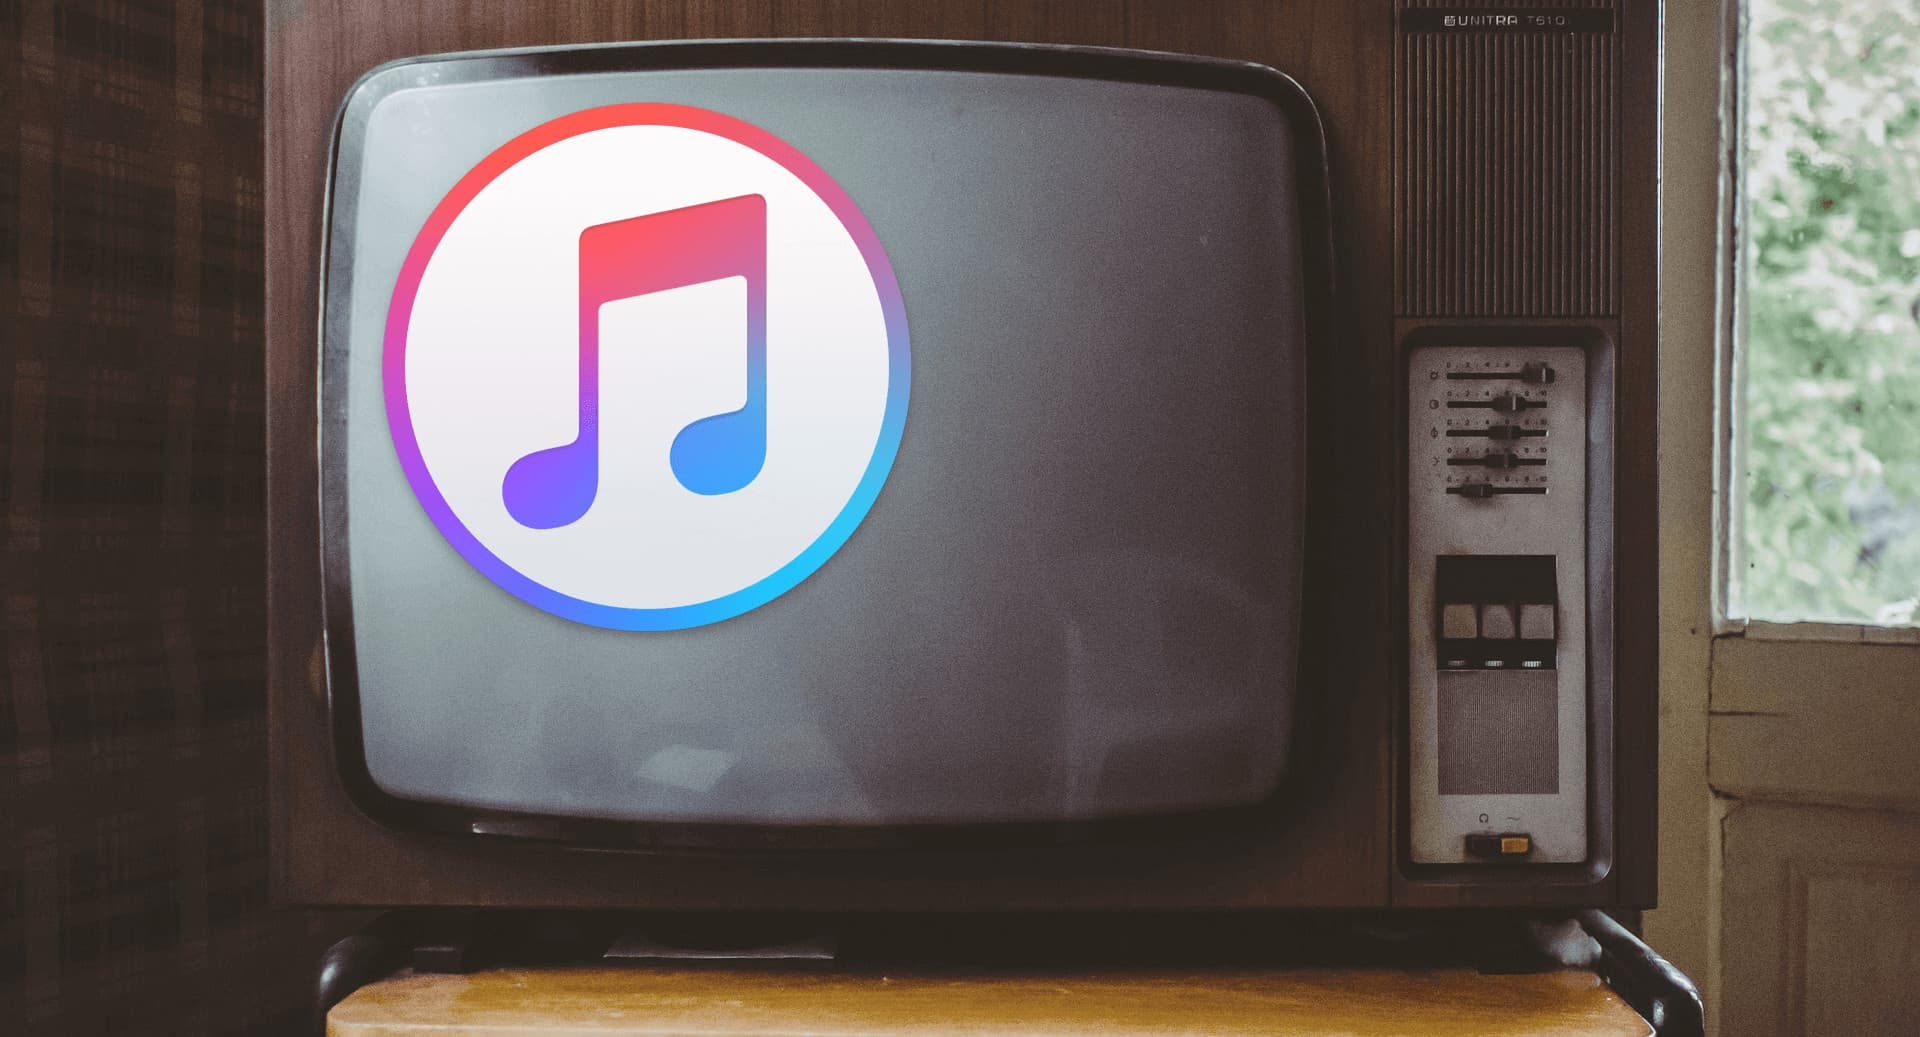 How to remove drm from itunes movies 1